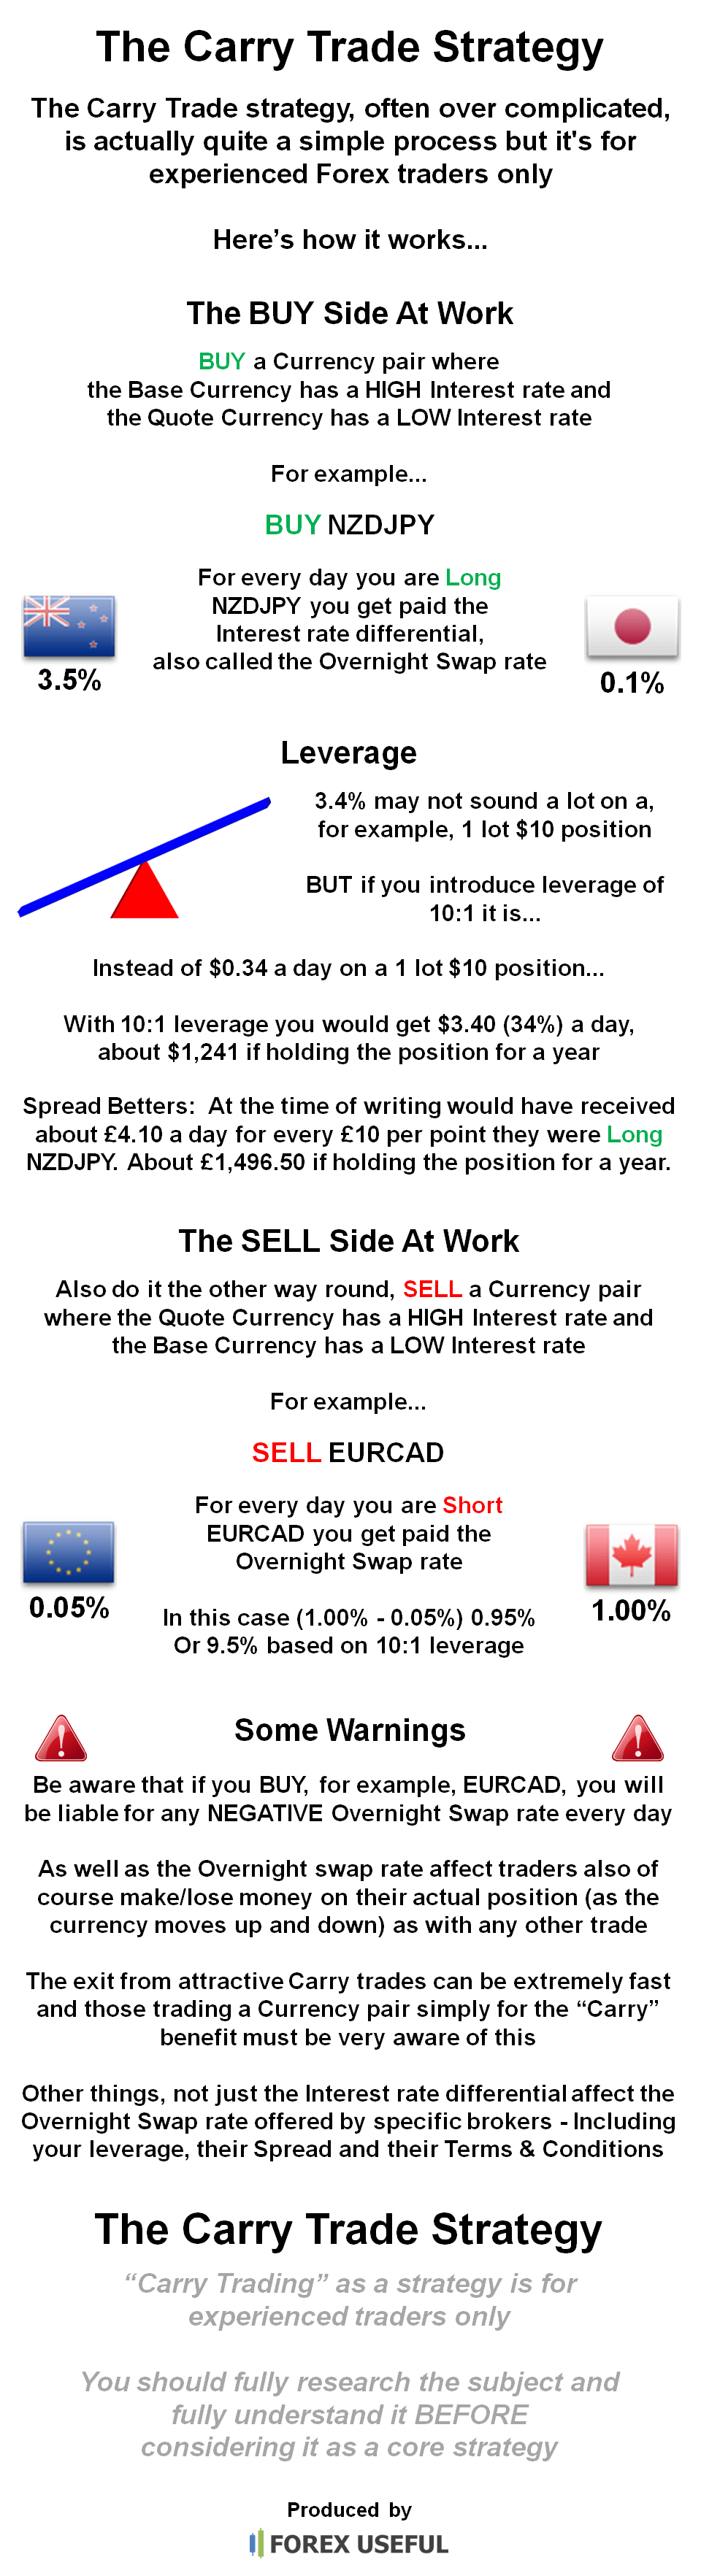 Carry trade forex 2019